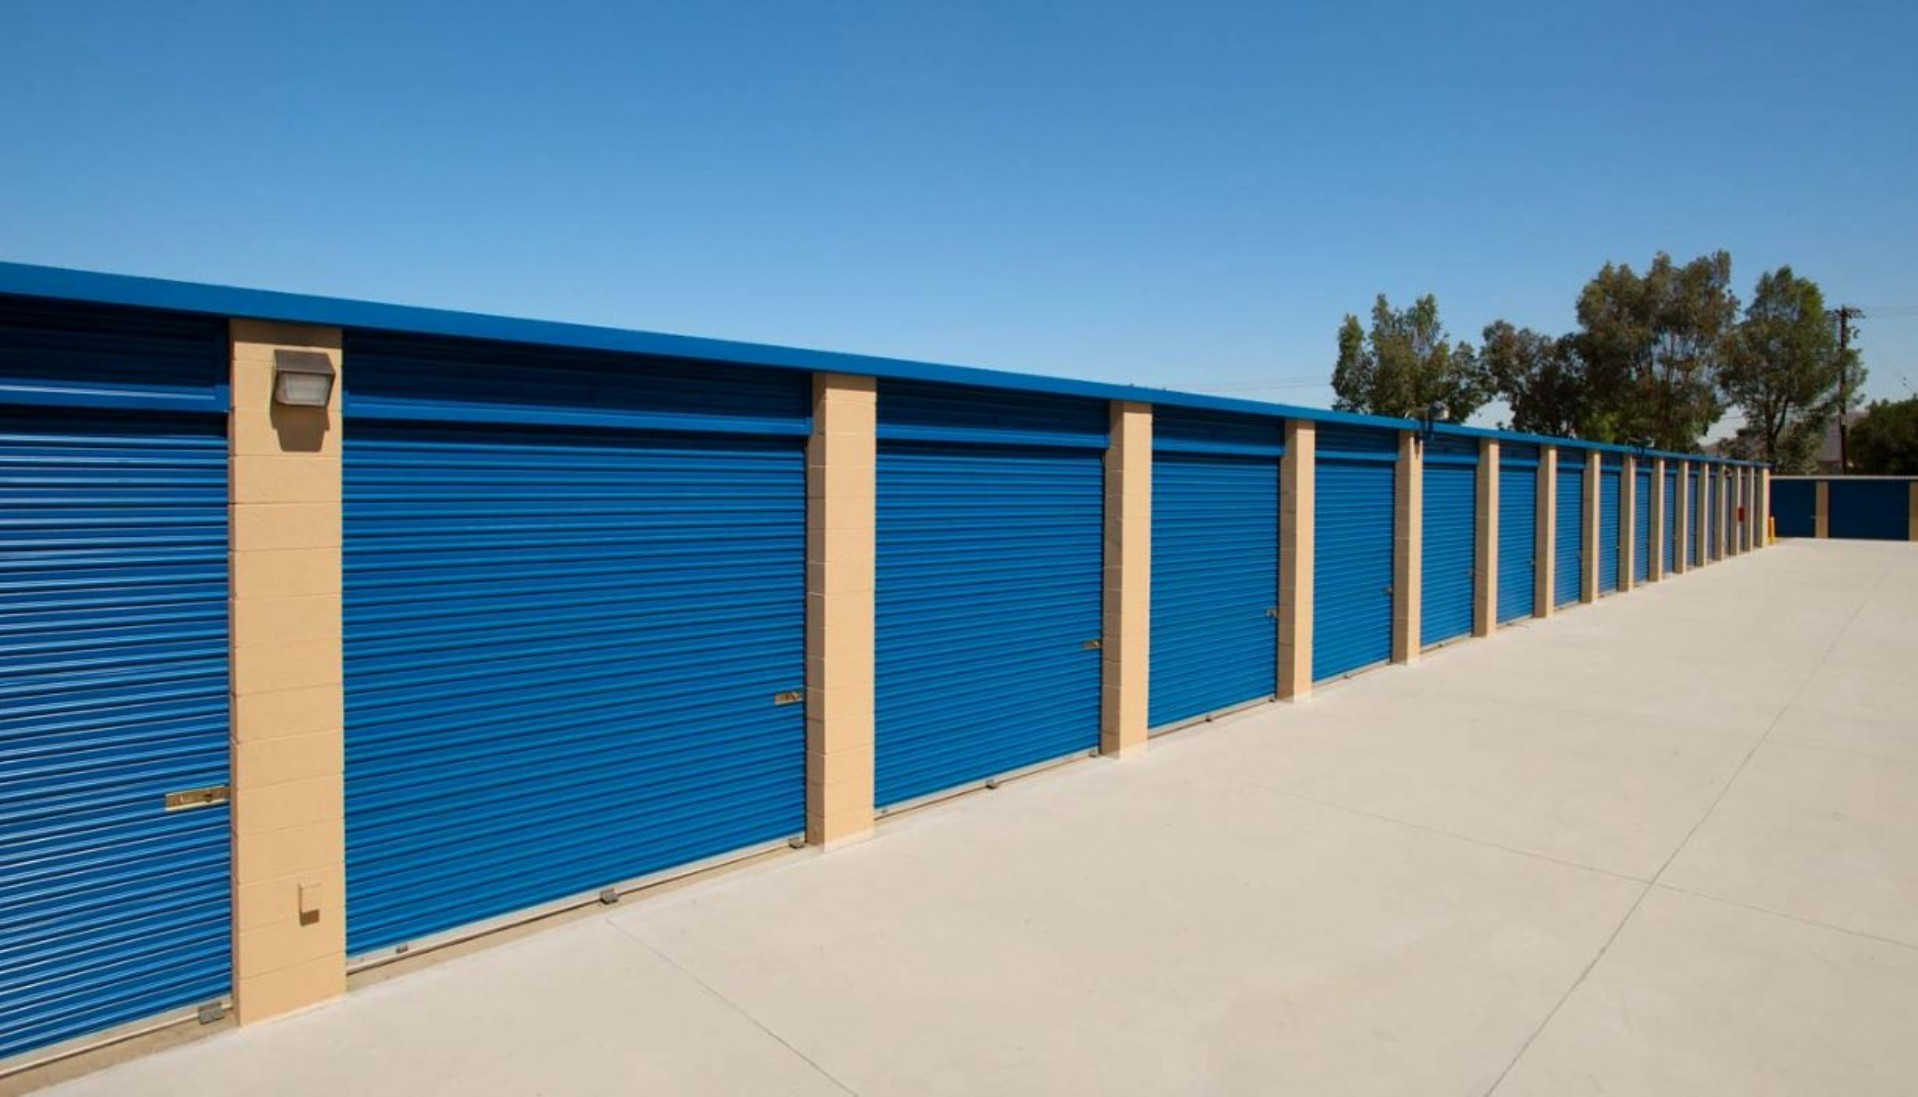 Garage sized drive up storage units with metal roll up doors